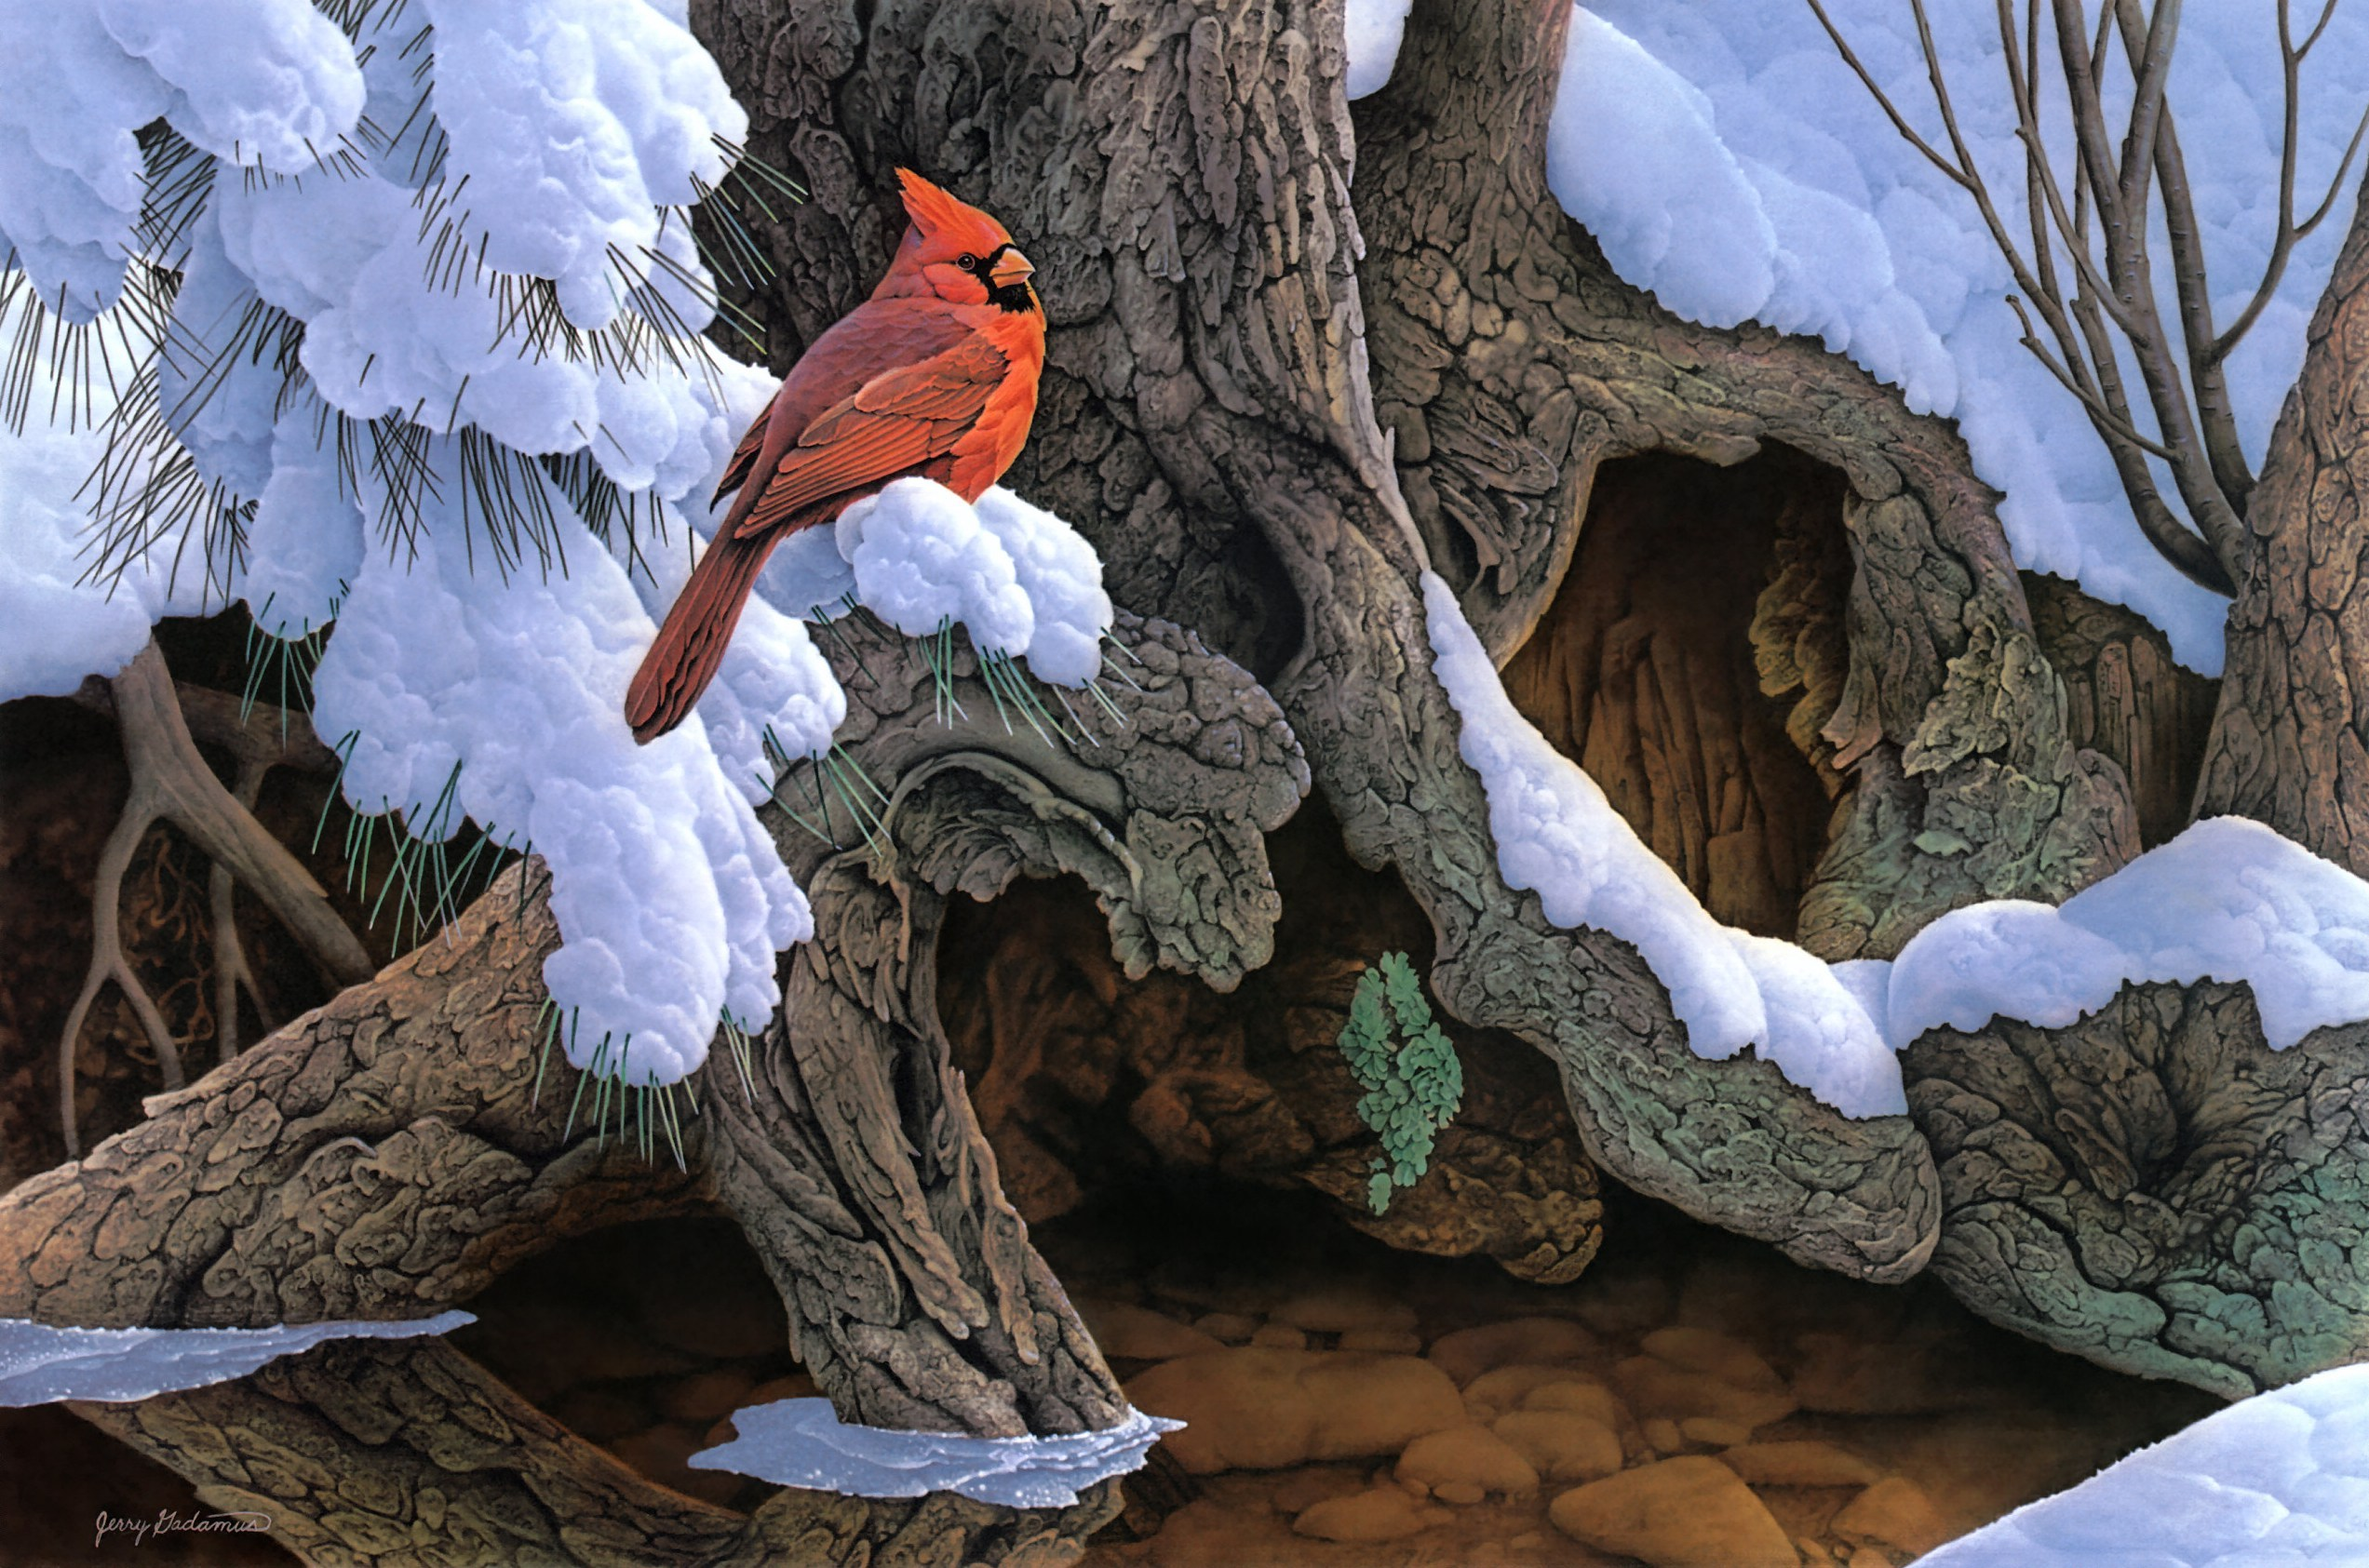 Painting snow winter tree bird cardinal wallpaper 2545x1685 132748 2545x1685